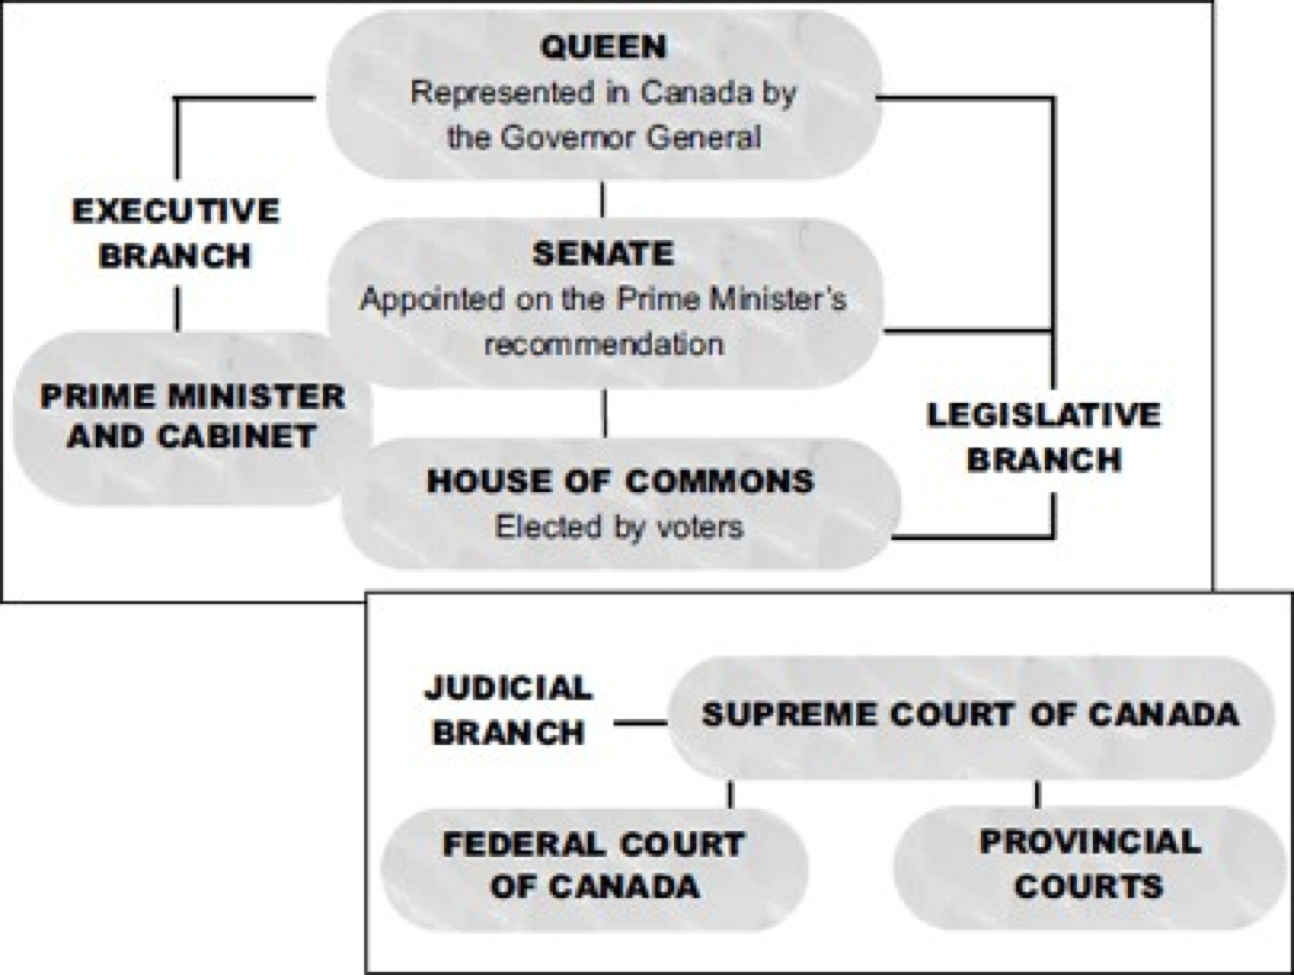 a comparison of american system and canadian system The paper will then focus on the structure of the bureaucracy in the two systems, and explain how the american separation of powers system, creates a complex, an ineffectual system, compared to the canadian government that has less restrictions, and allows for effective policy making.